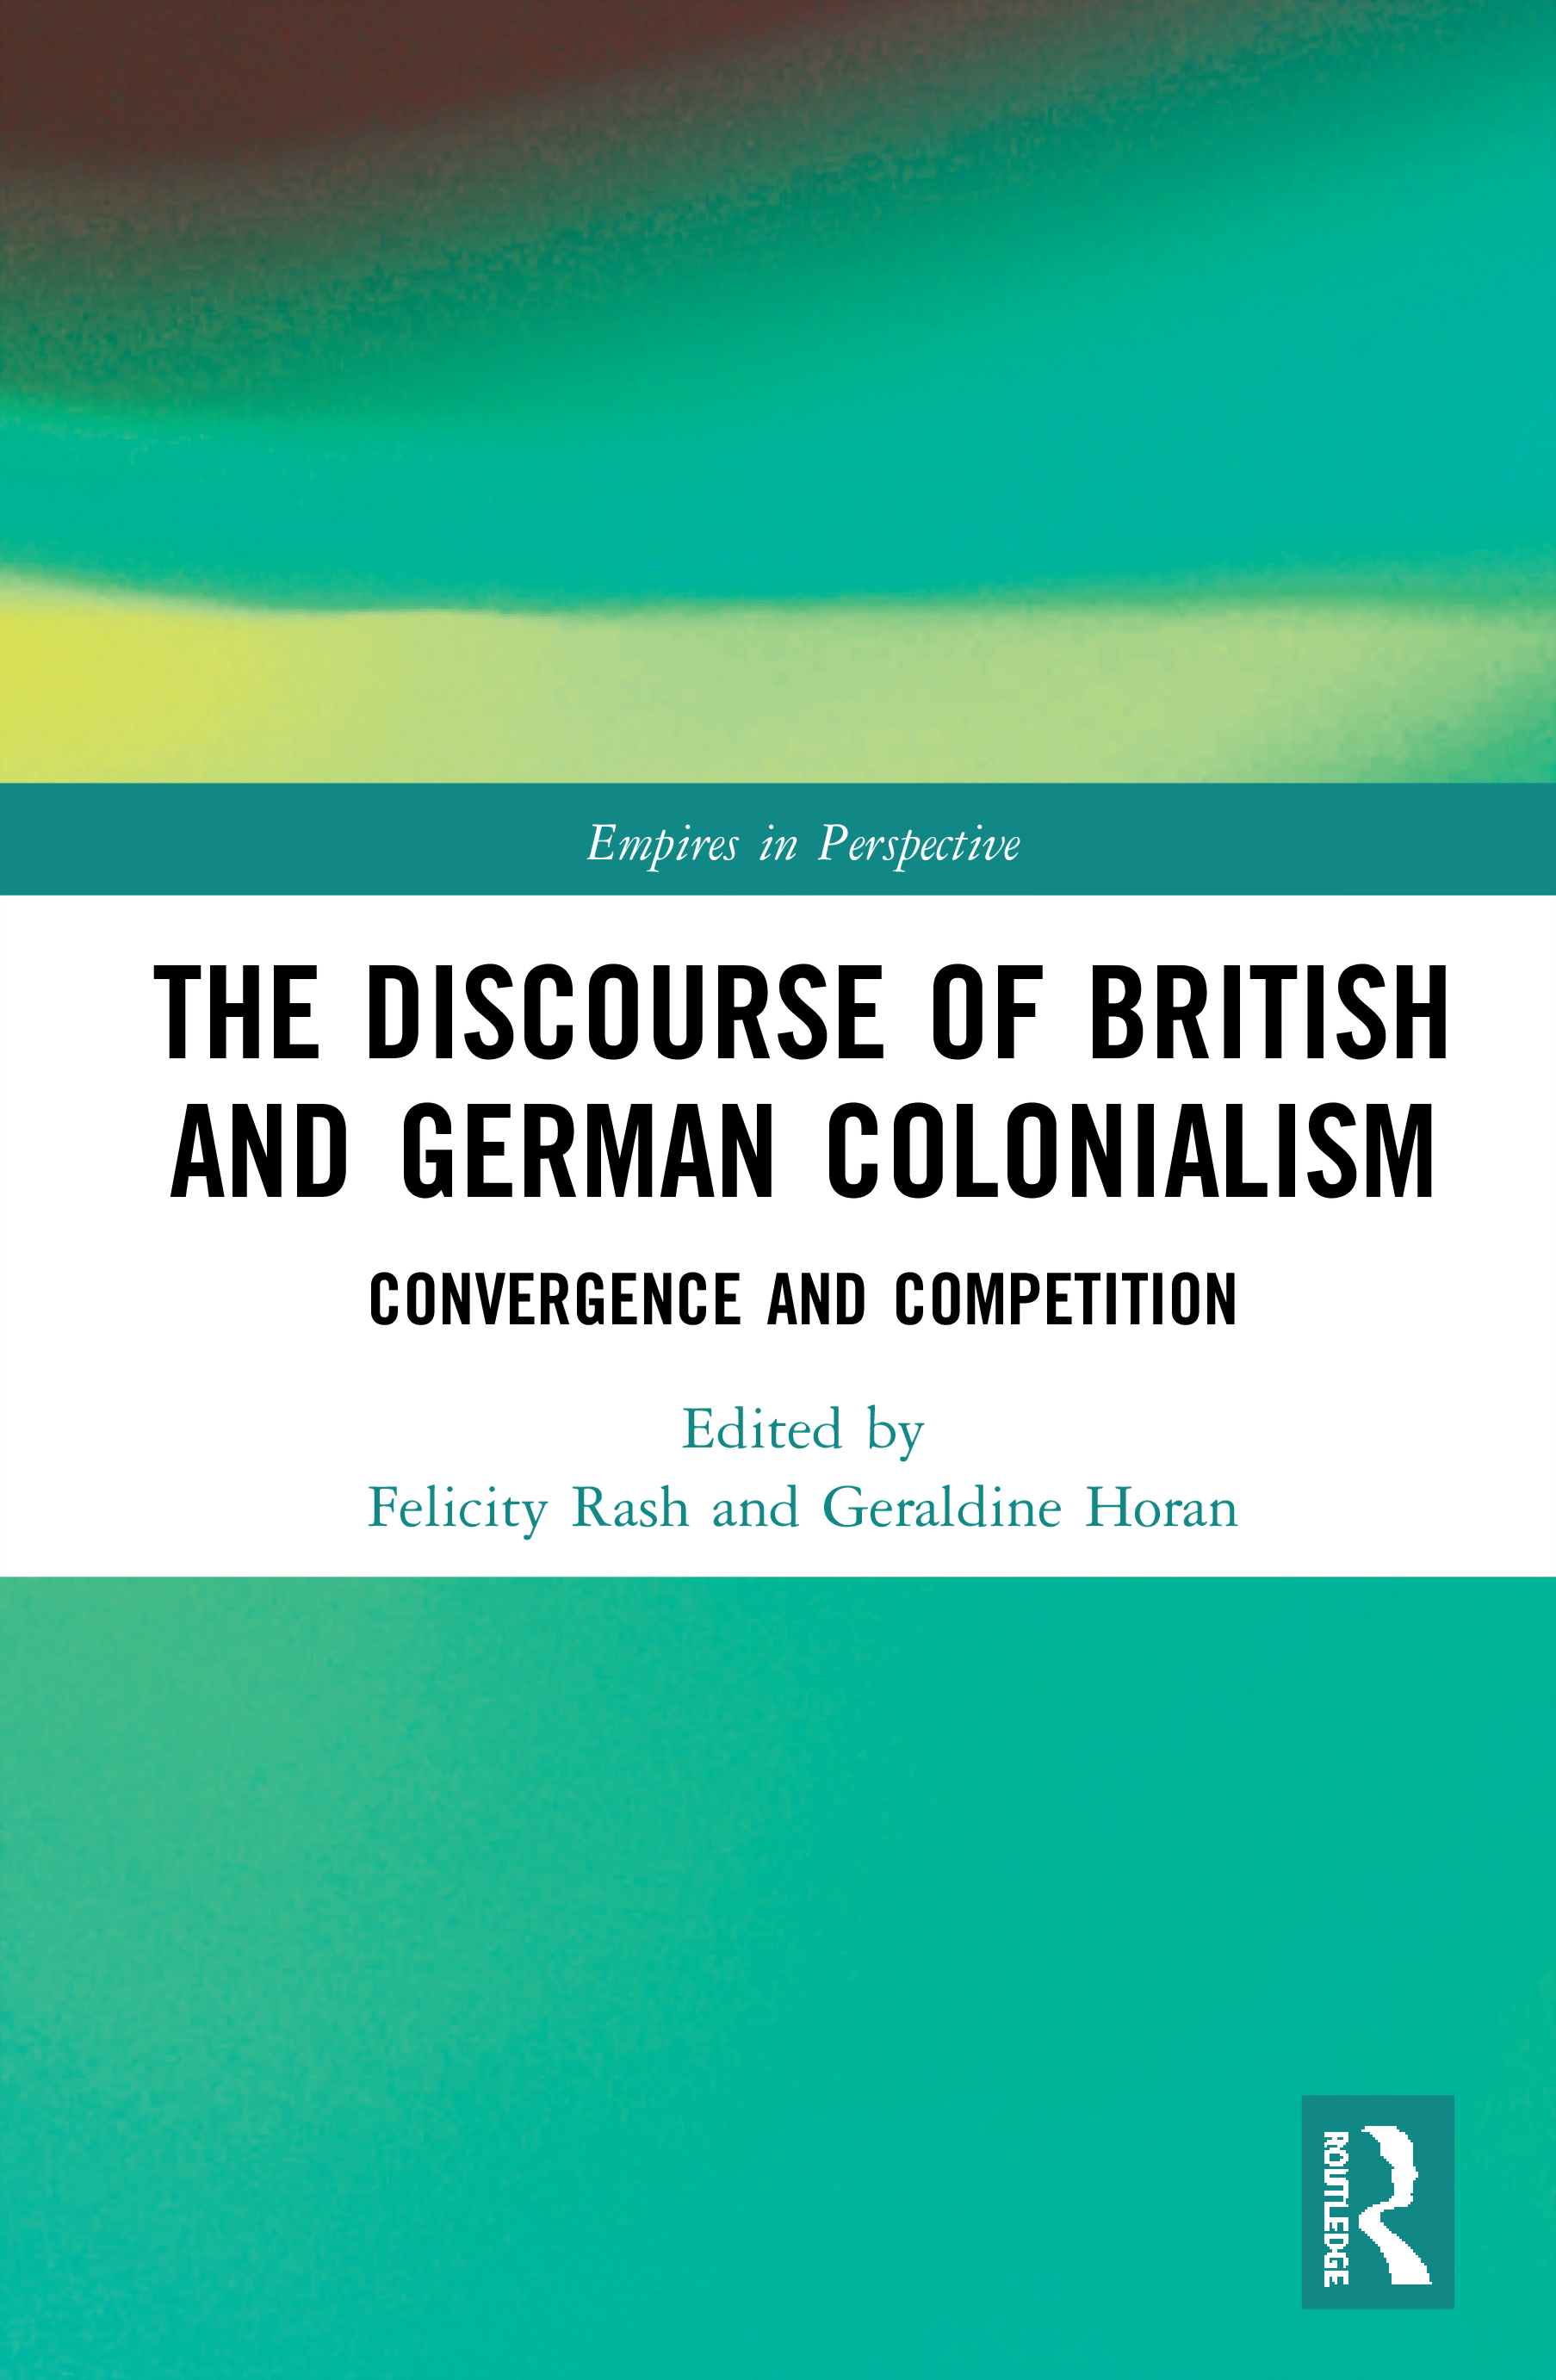 The Discourse of British and German Colonialism: Convergence and Competition book cover